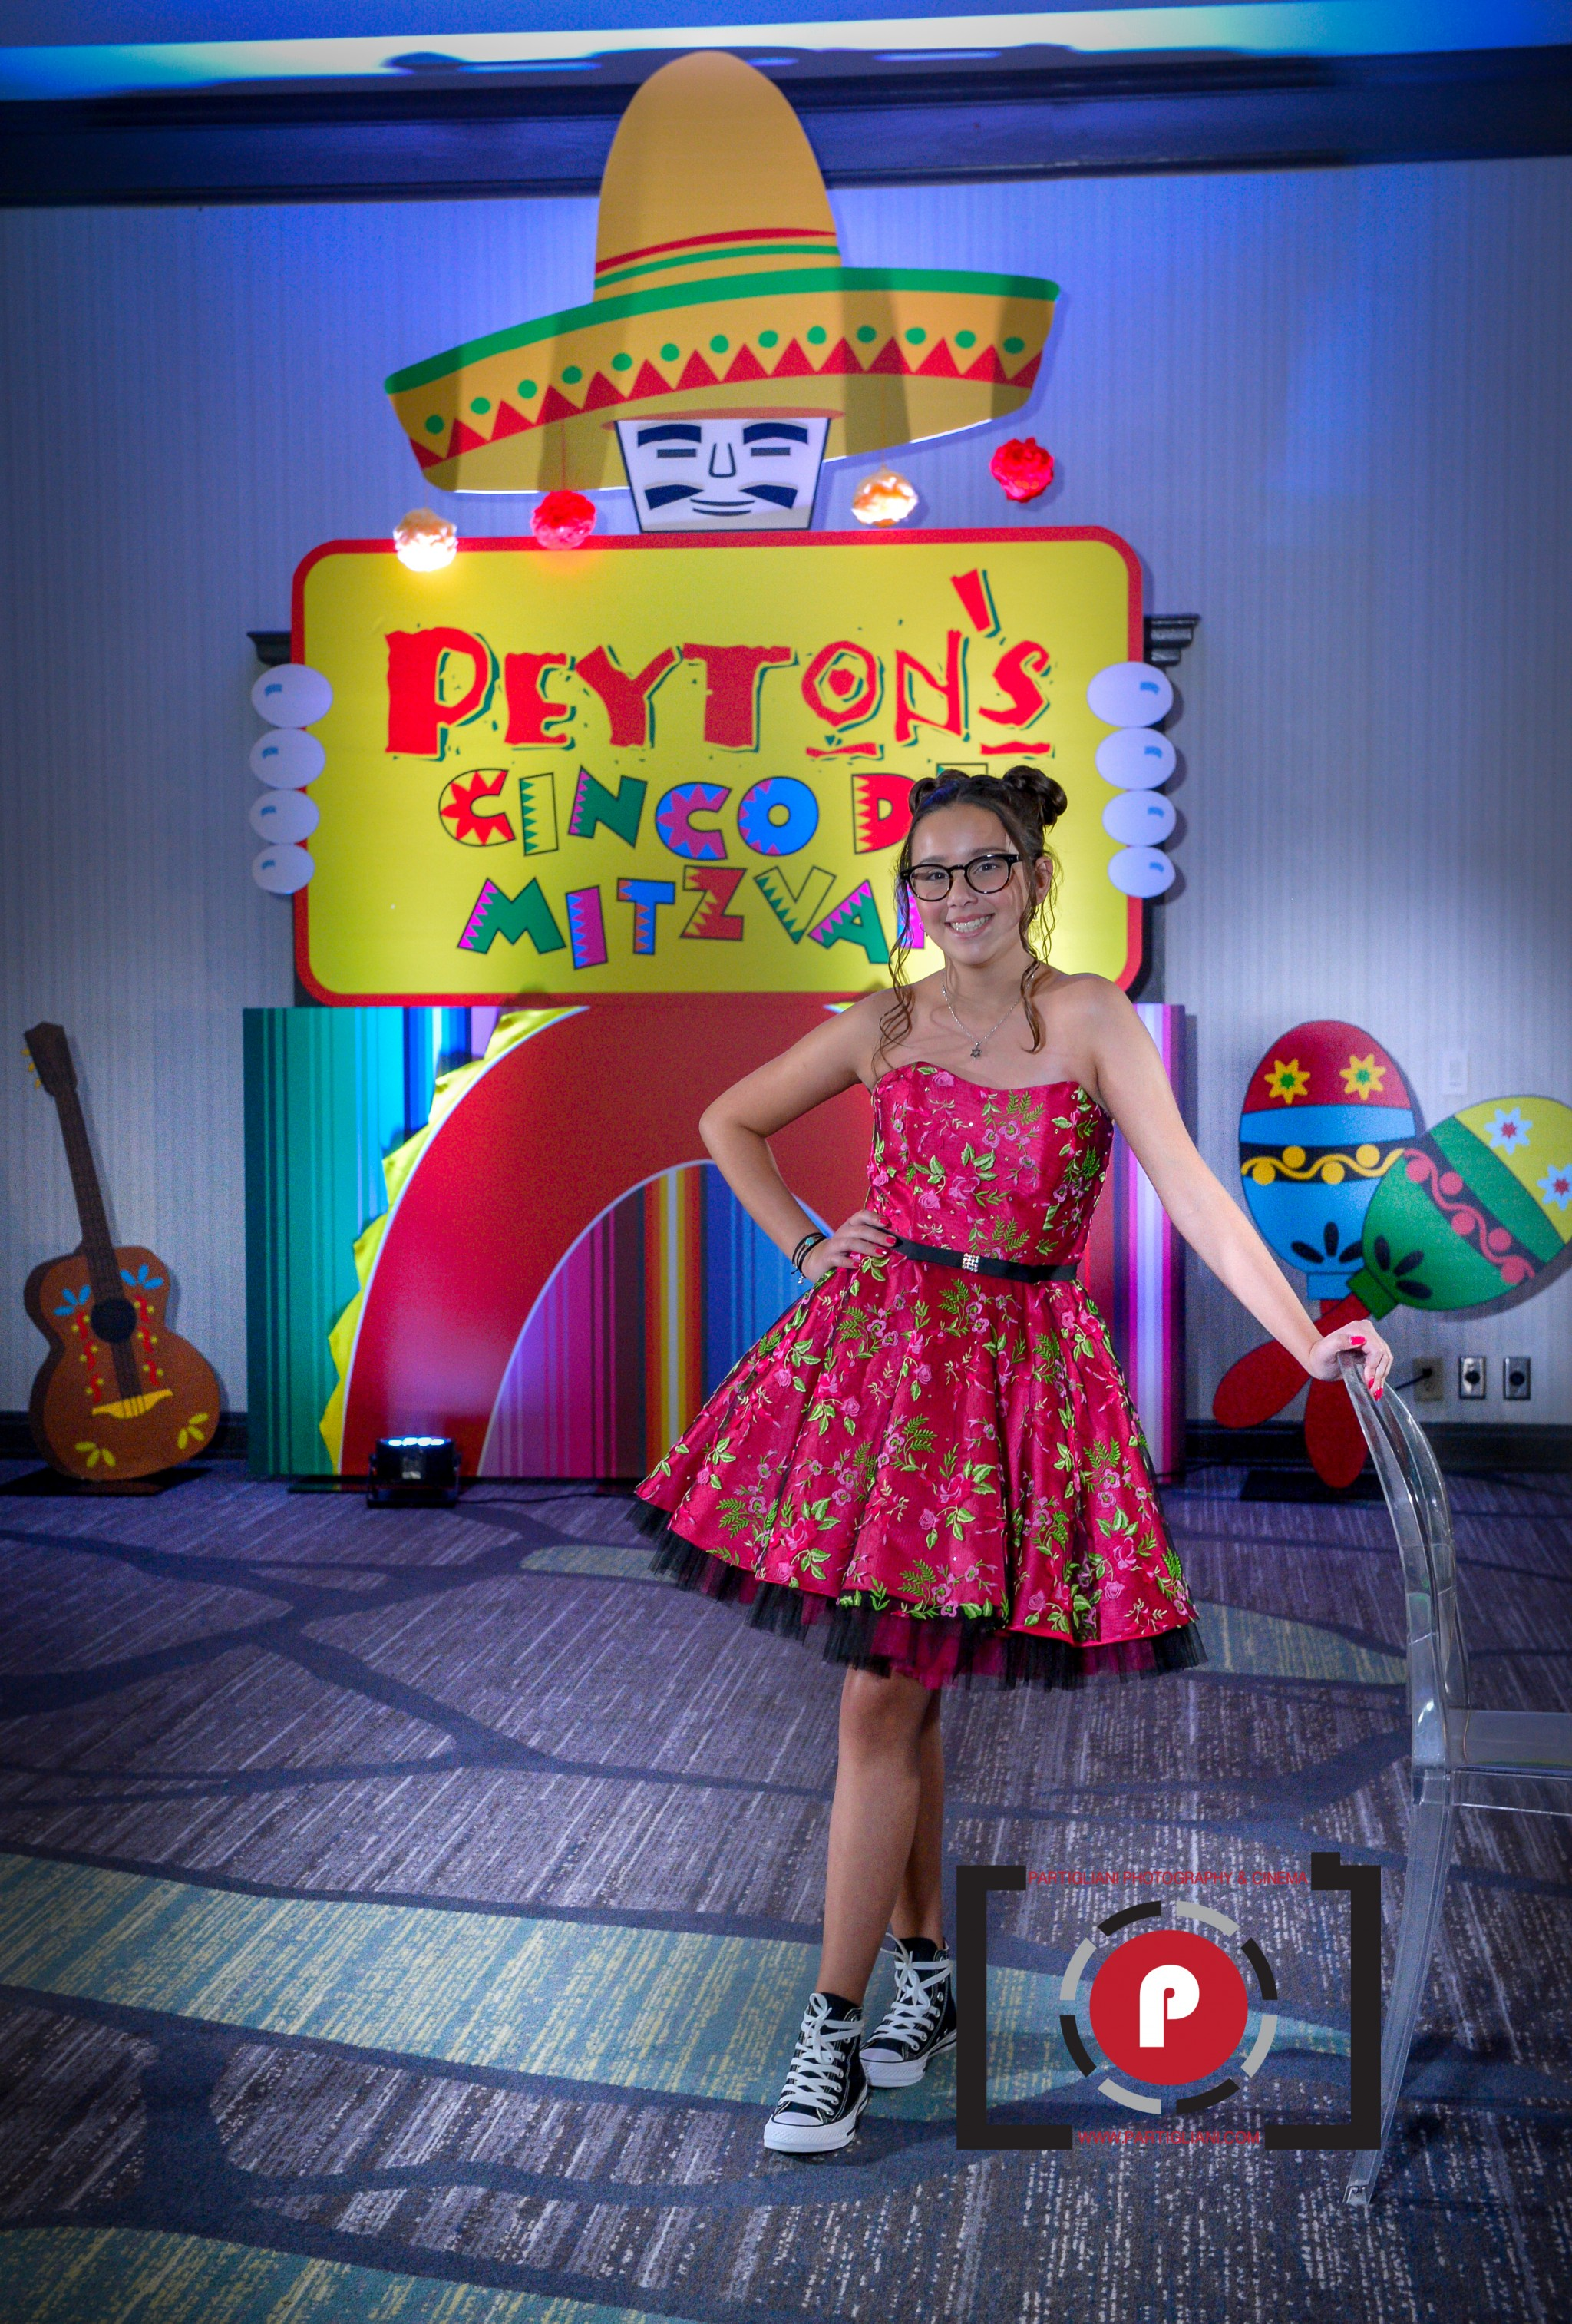 PEYTON POPPER BAT MITZVAH, PEYTON'S CINCO THE MITZVAH PARTY. CAROLYN'S CREATIONZ, RABBI JONATHAN KAPLAN. MICHAEL Z ENTERTAINMENT, MARRIOTT BOCA RATON, VANINA TARLOVSKY DESIGN. ERIC CUTLER. MAKE UP LYNETTE DEMAR.